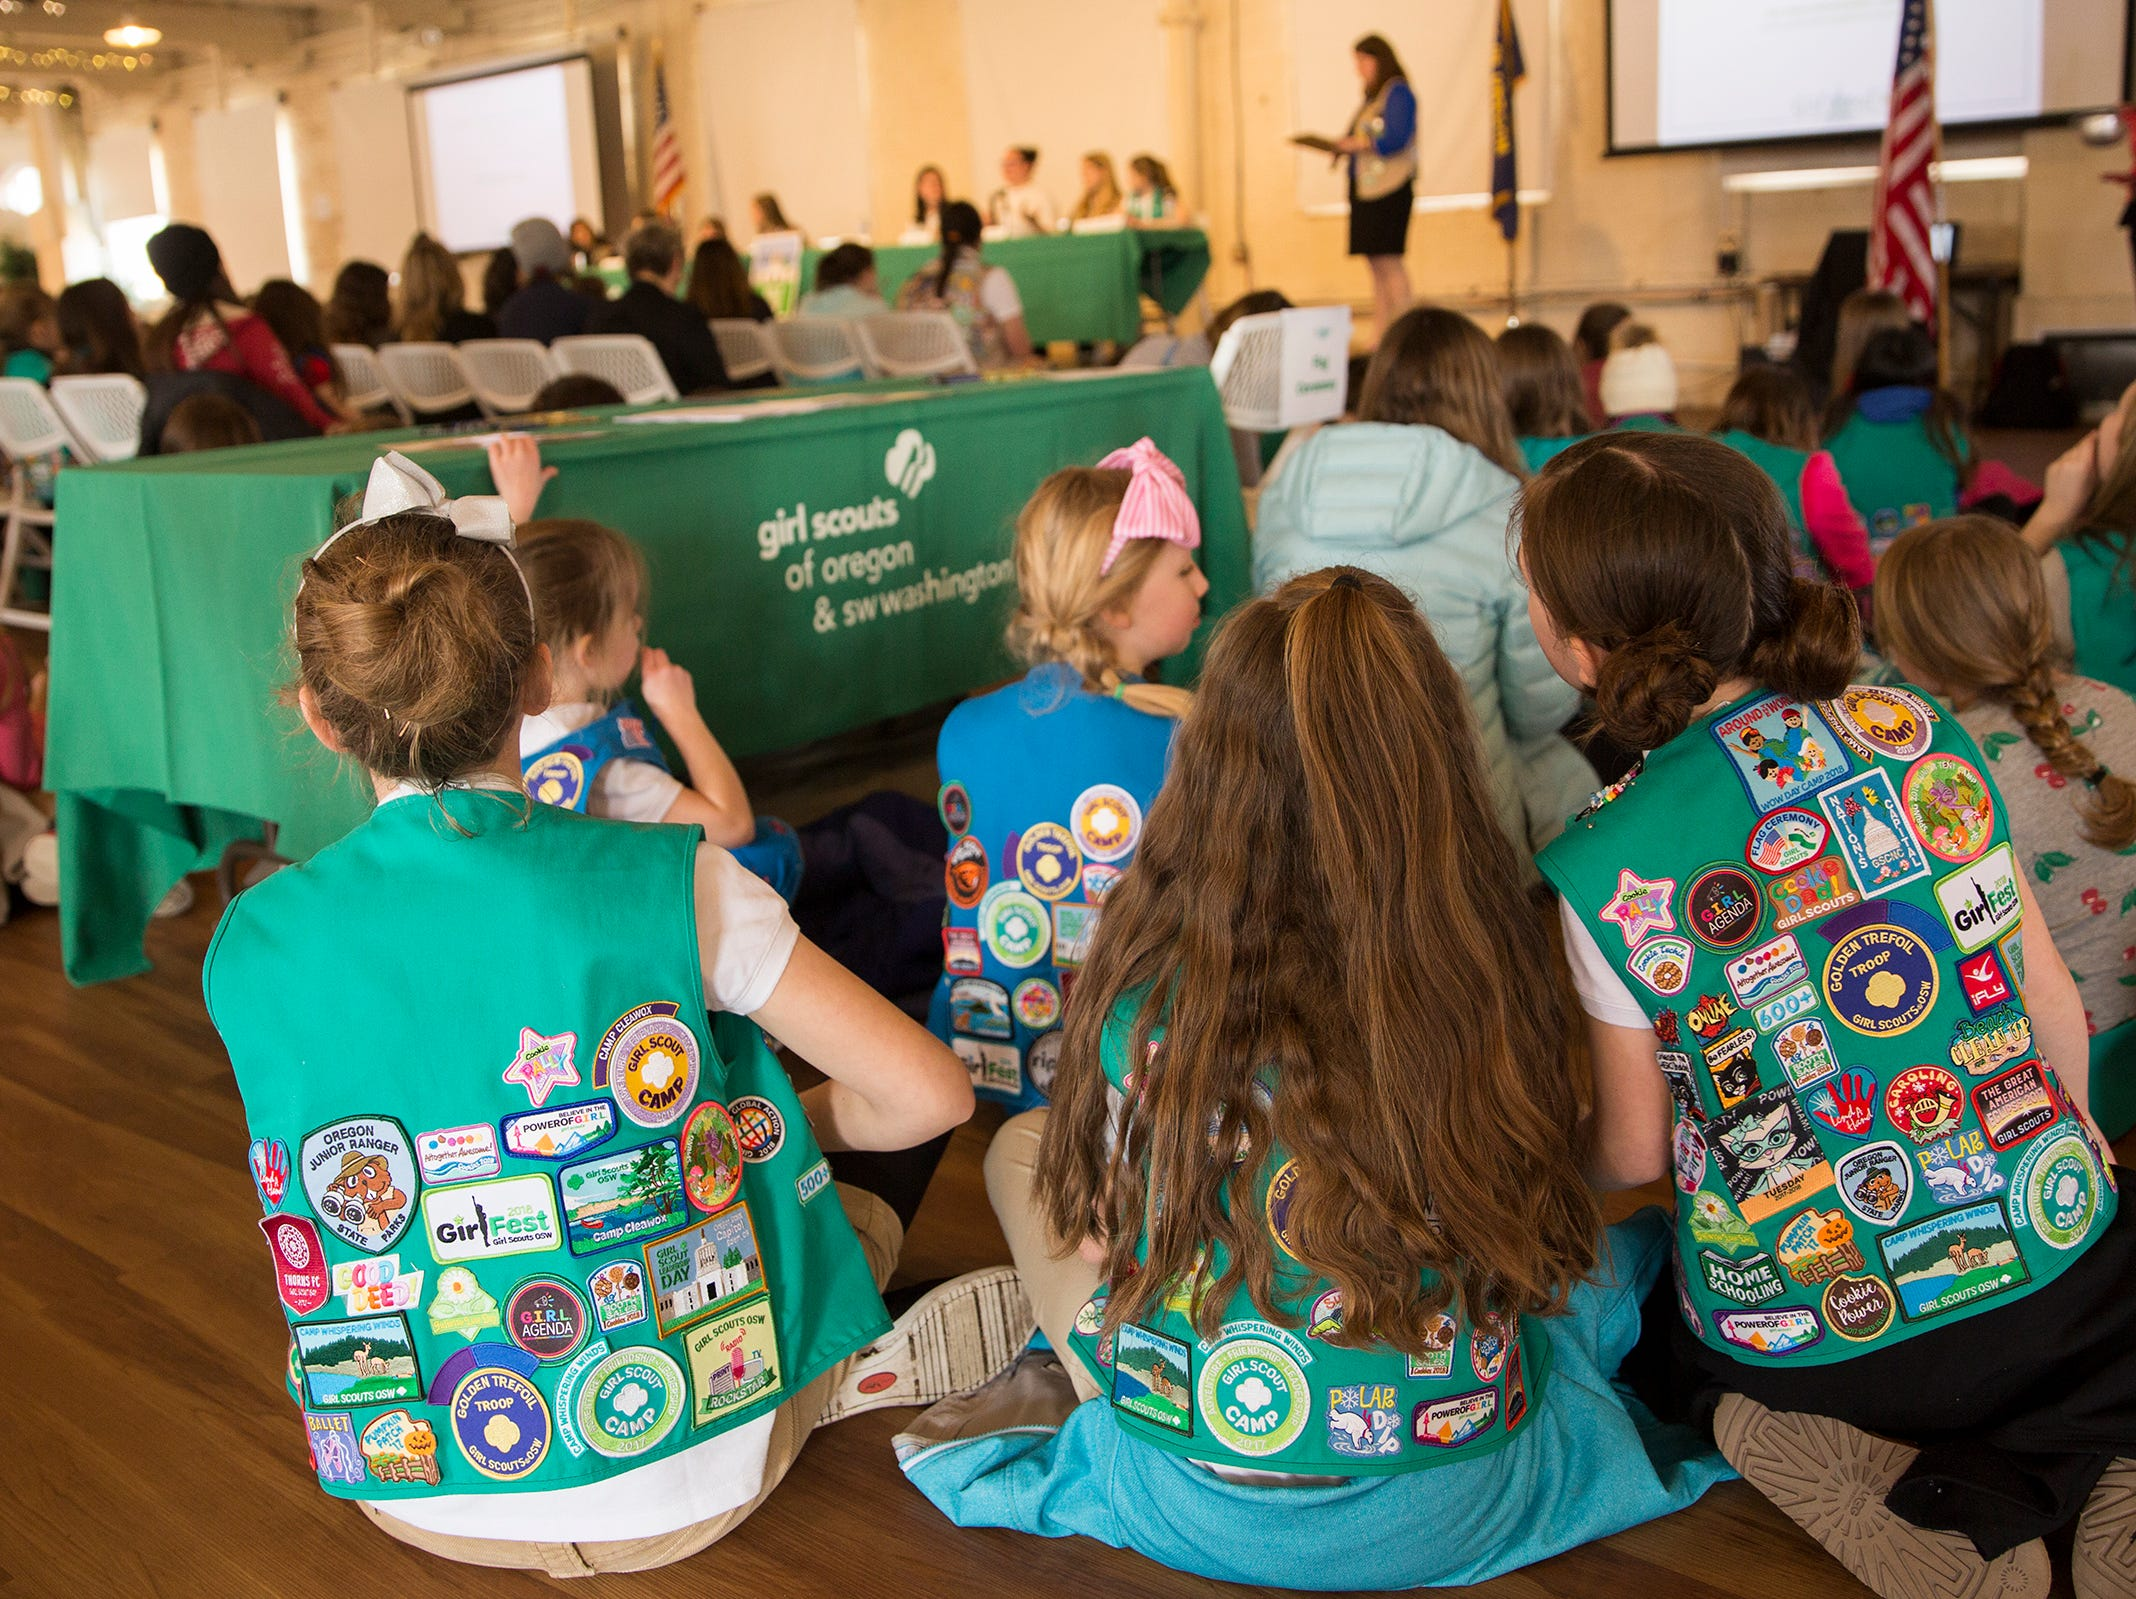 Girl Scouts from across the state listen to a a Girls Who Make a Difference panel during Girl Scout Leadership Day at the Willamette Heritage Center in Salem March 12, 2019.